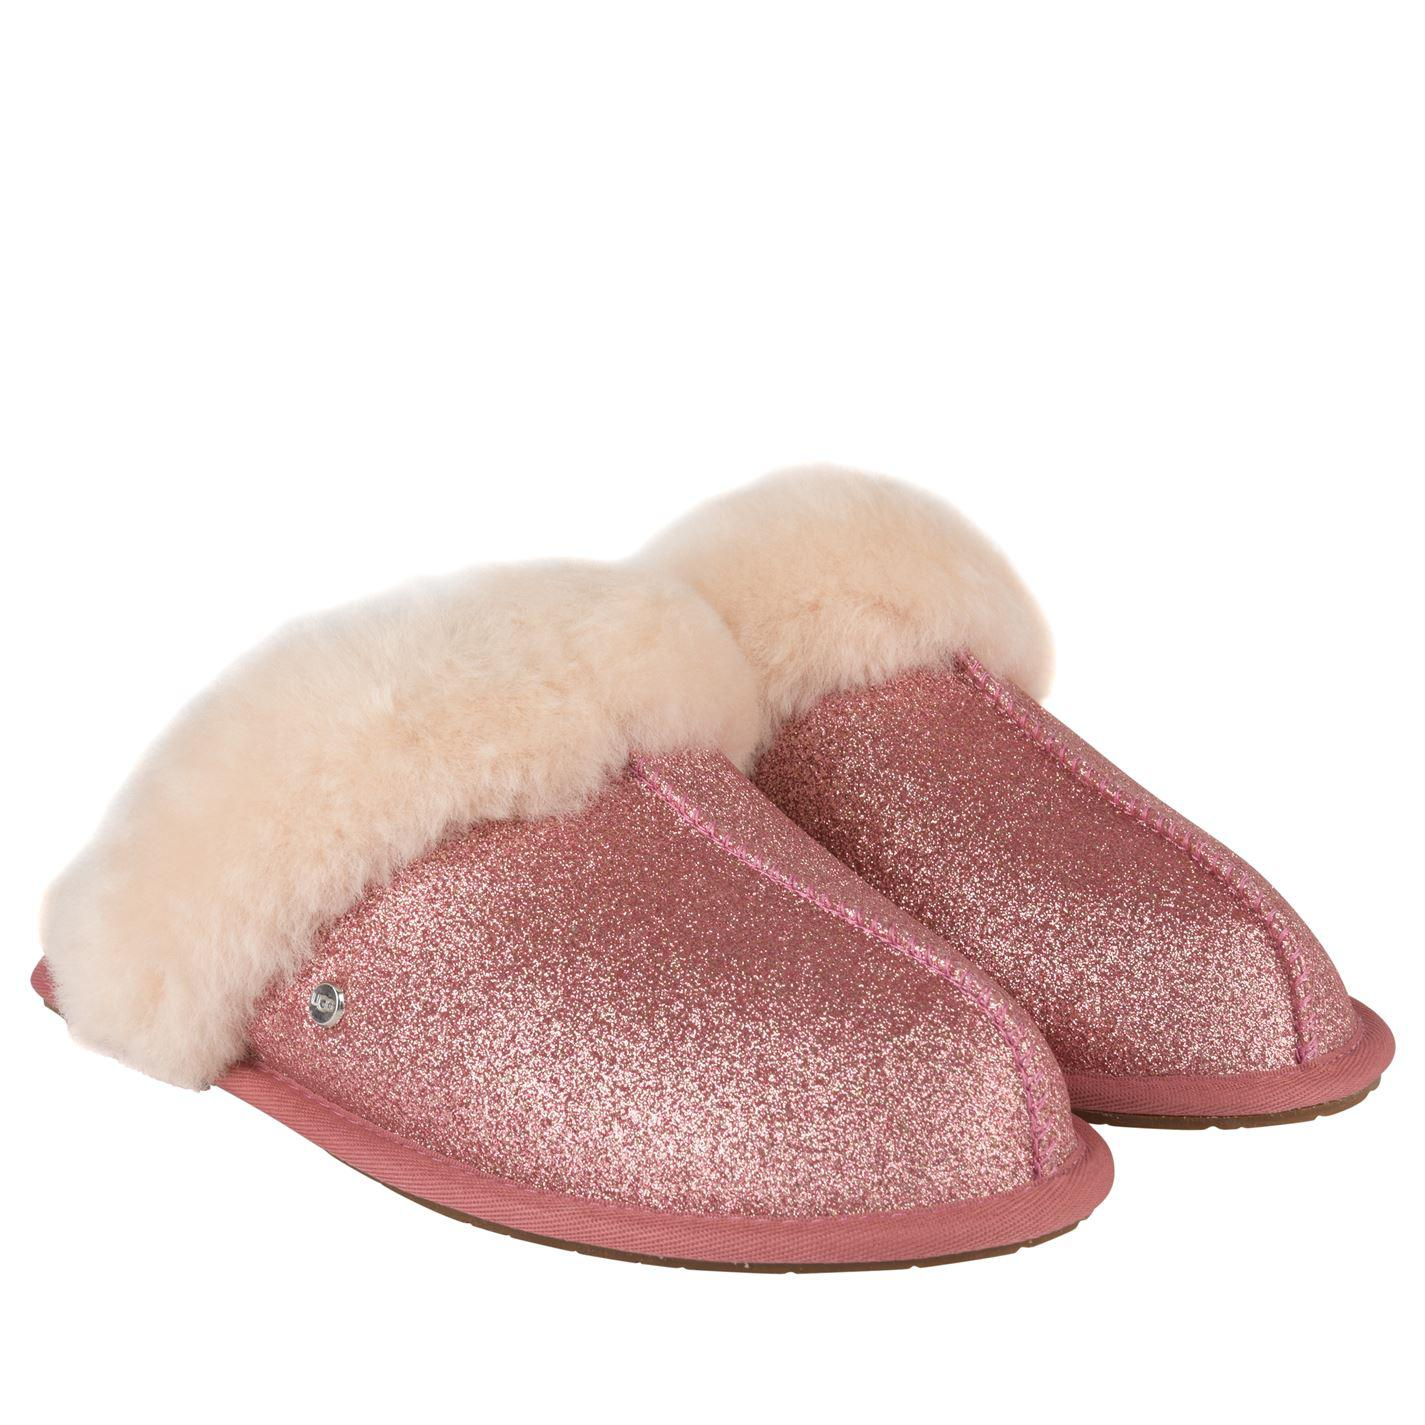 f66cde5fccf7 UGG Sparkle Slippers in Pink - Lyst